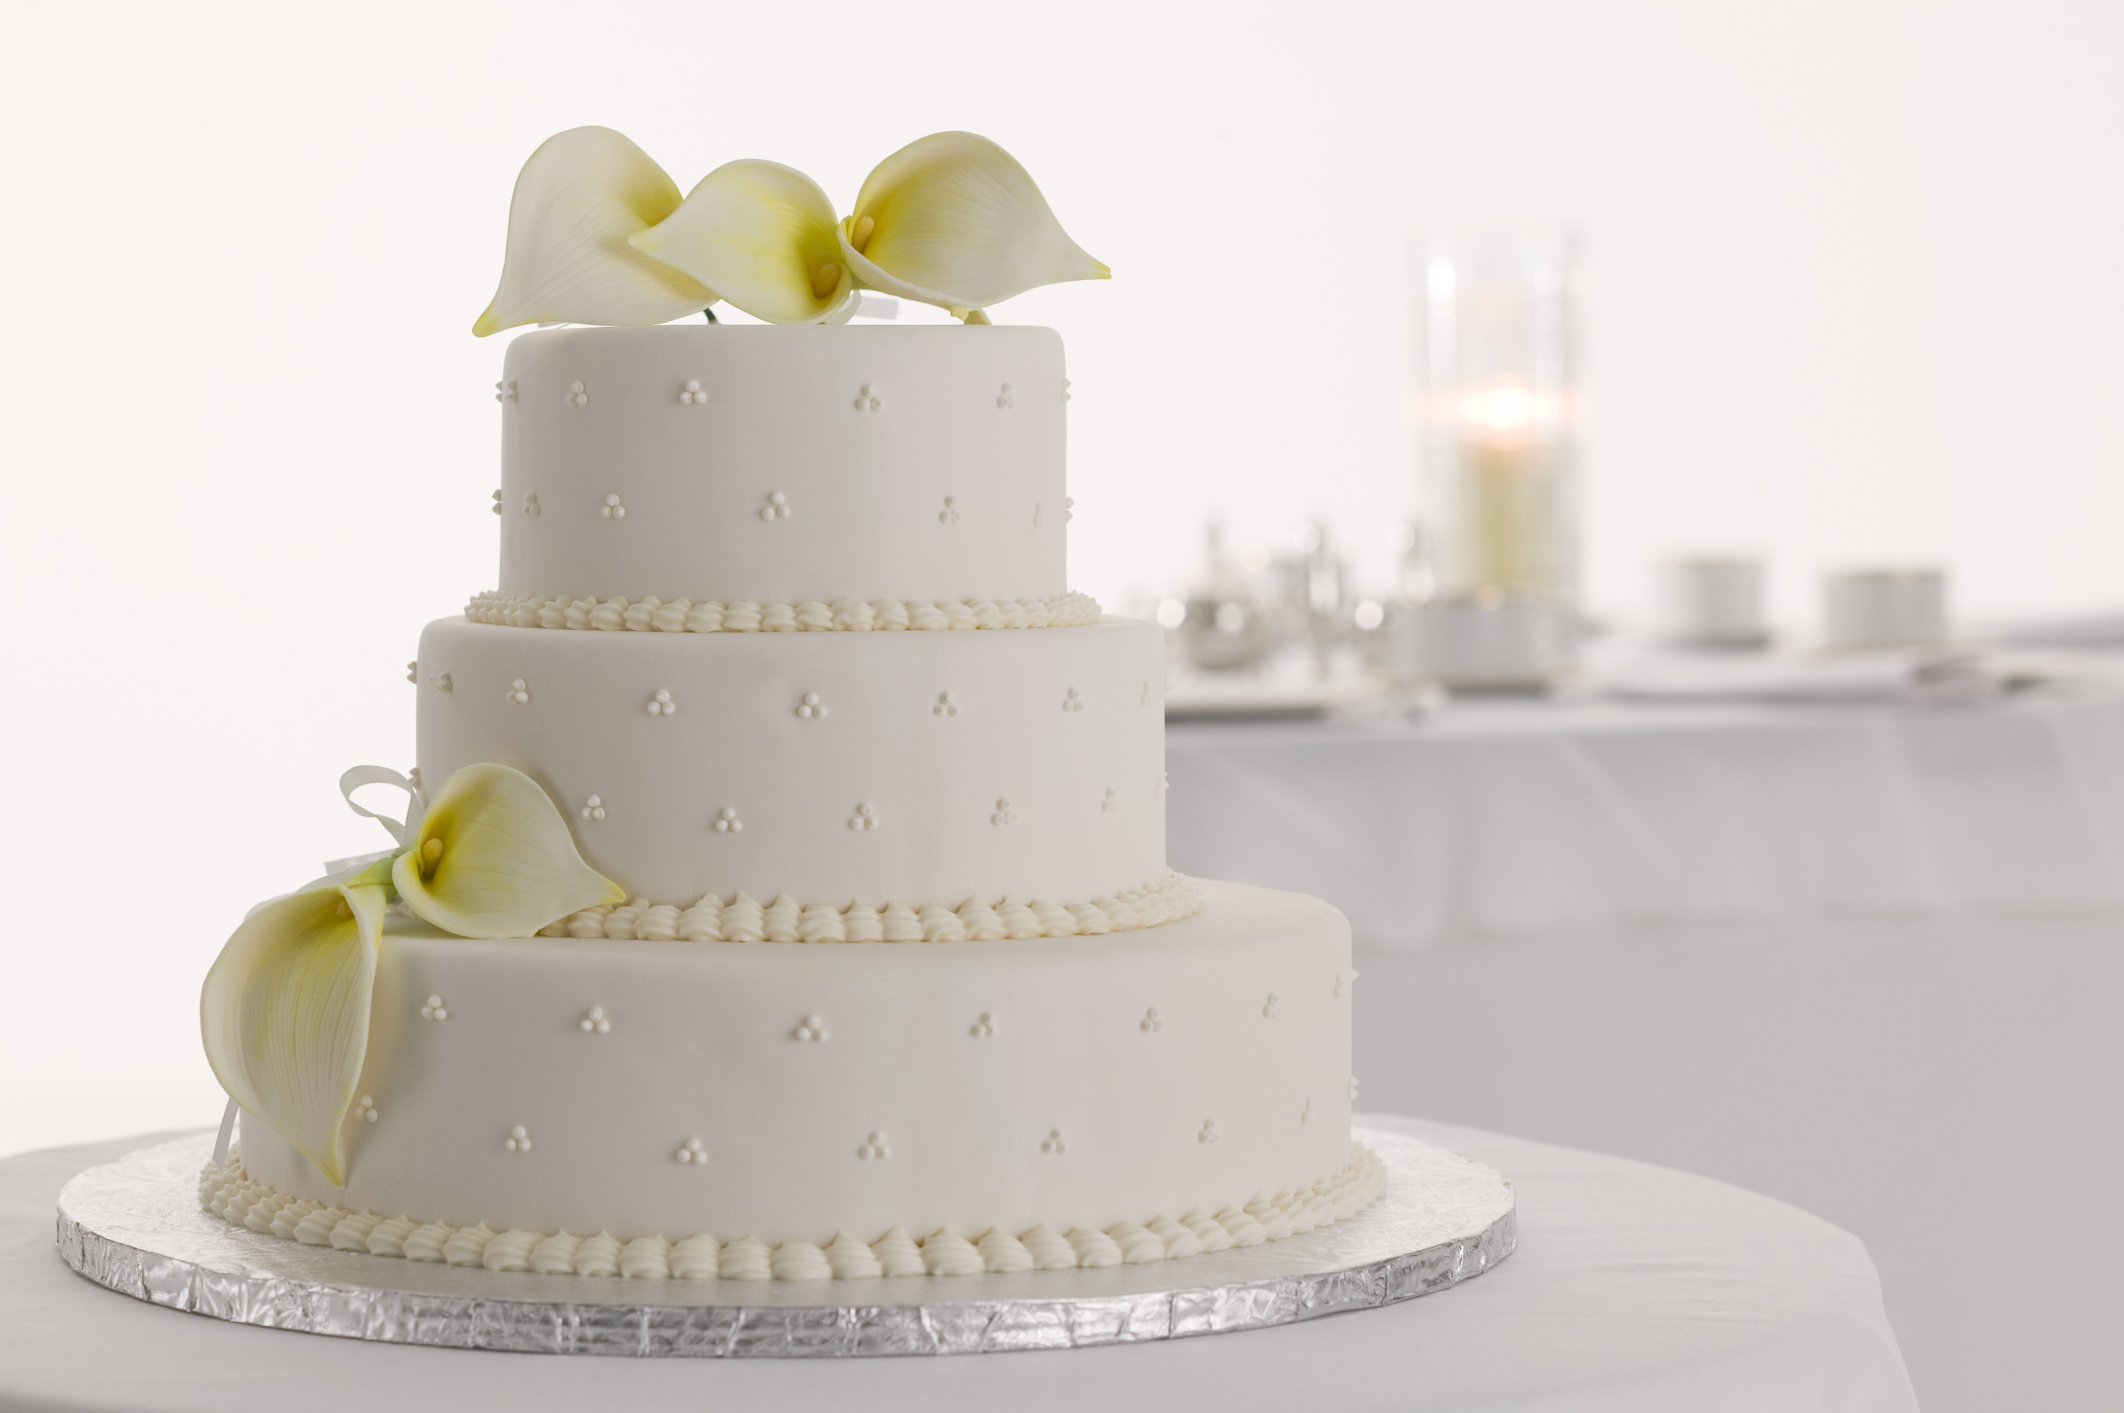 White wedding cakes - Articles - Easy Weddings